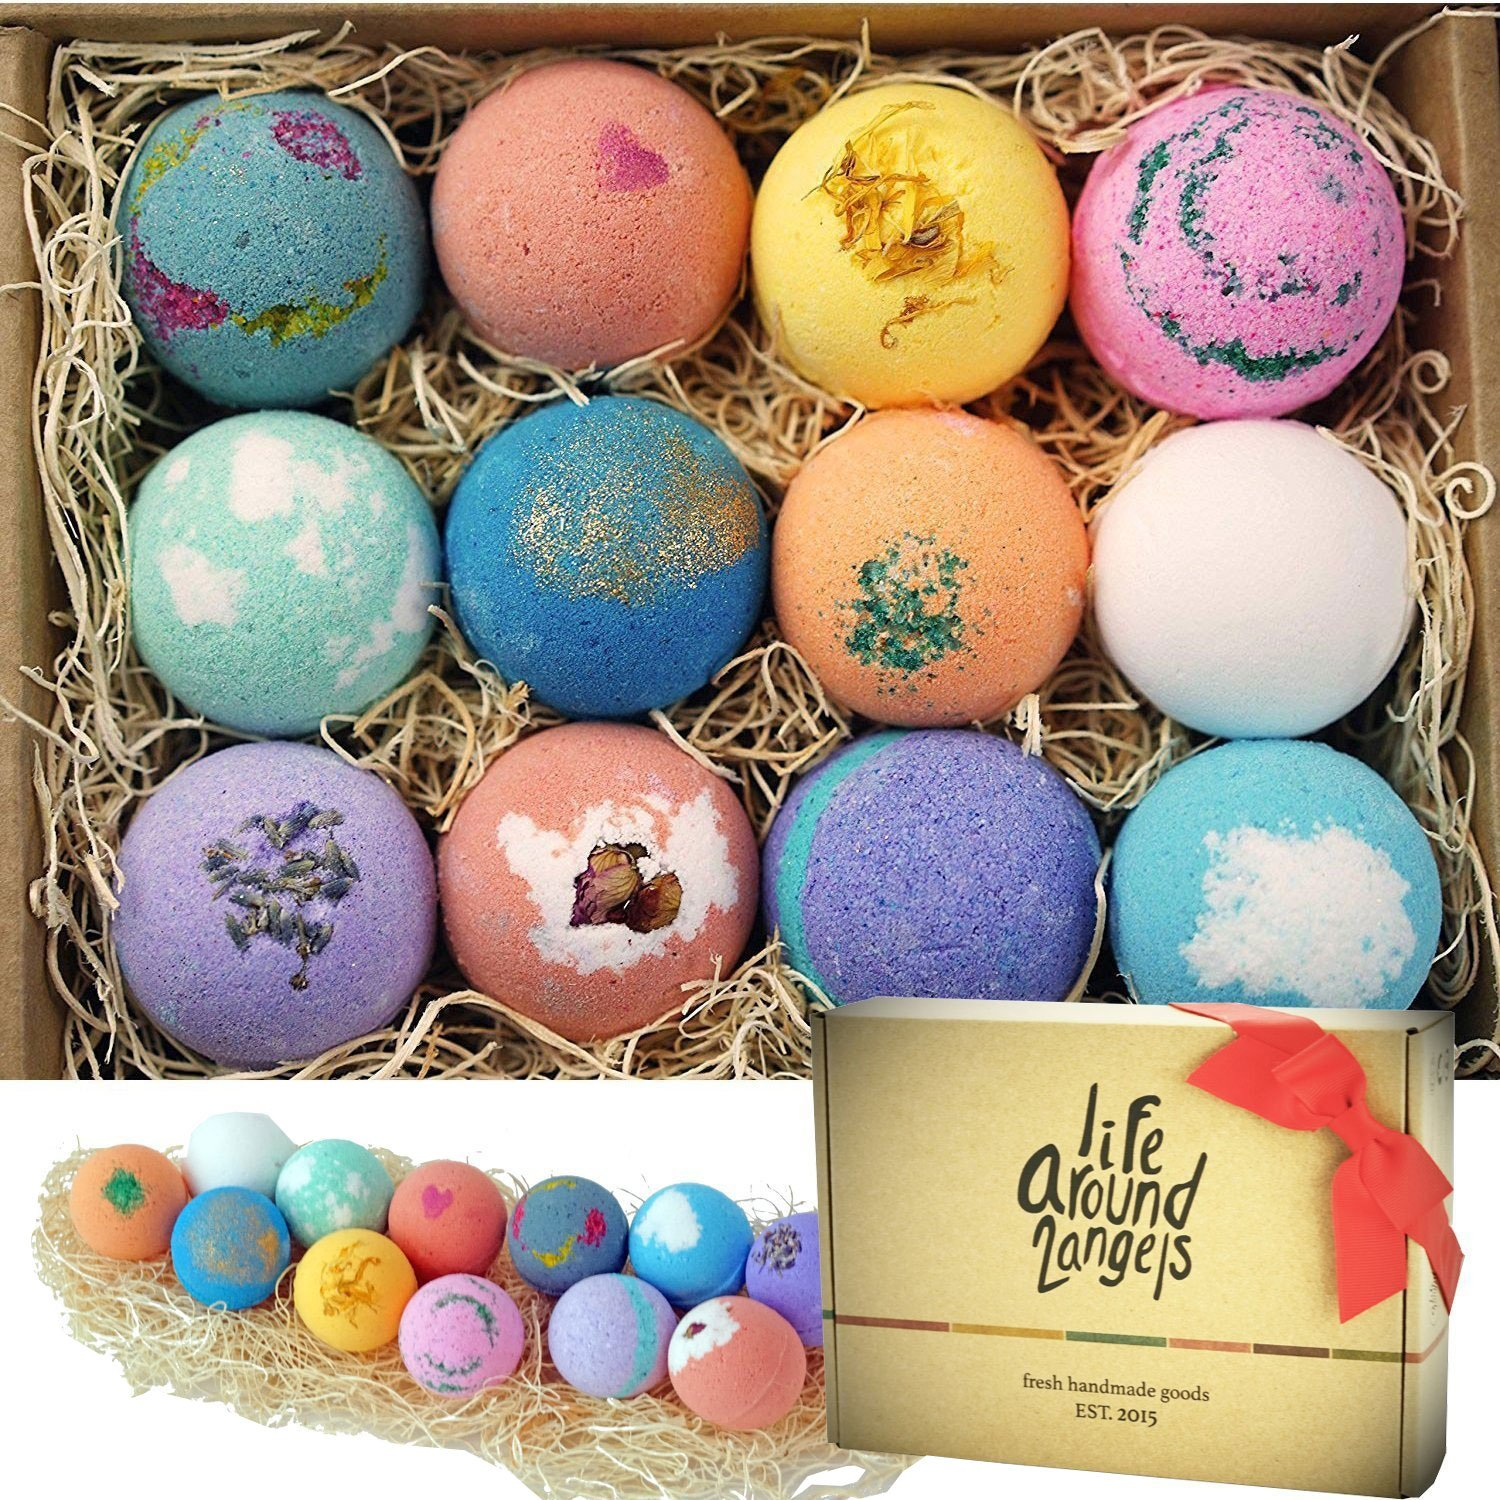 LifeAround2Angels Bath Bombs Gift Set 12 USA made Fizzies, Shea & Coco Butter Dry Skin Moisturize, Perfect for Bubble & Spa Bath. Handmade Birthday Mothers day Gifts idea For Her/Him, wife, girlfriend by LifeAround2Angels